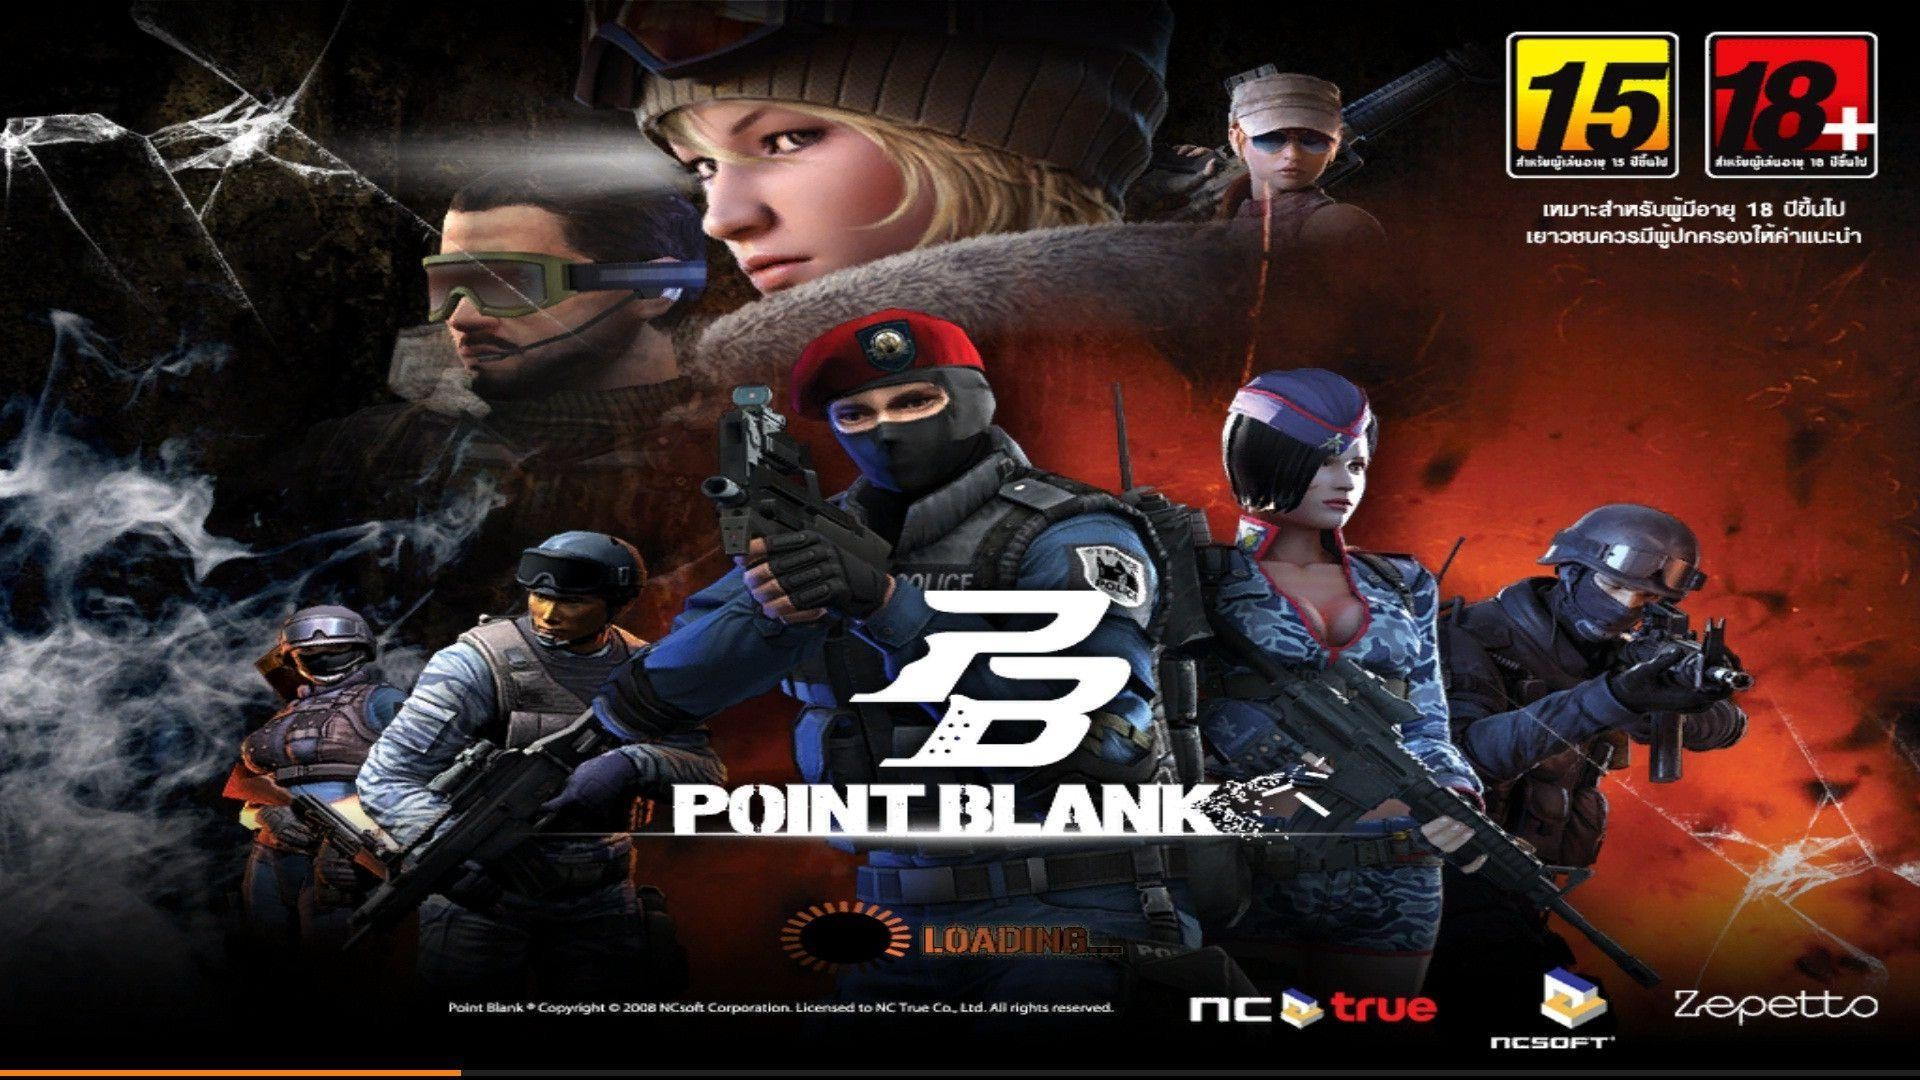 Point Blank Wallpaper 2018 72 Images